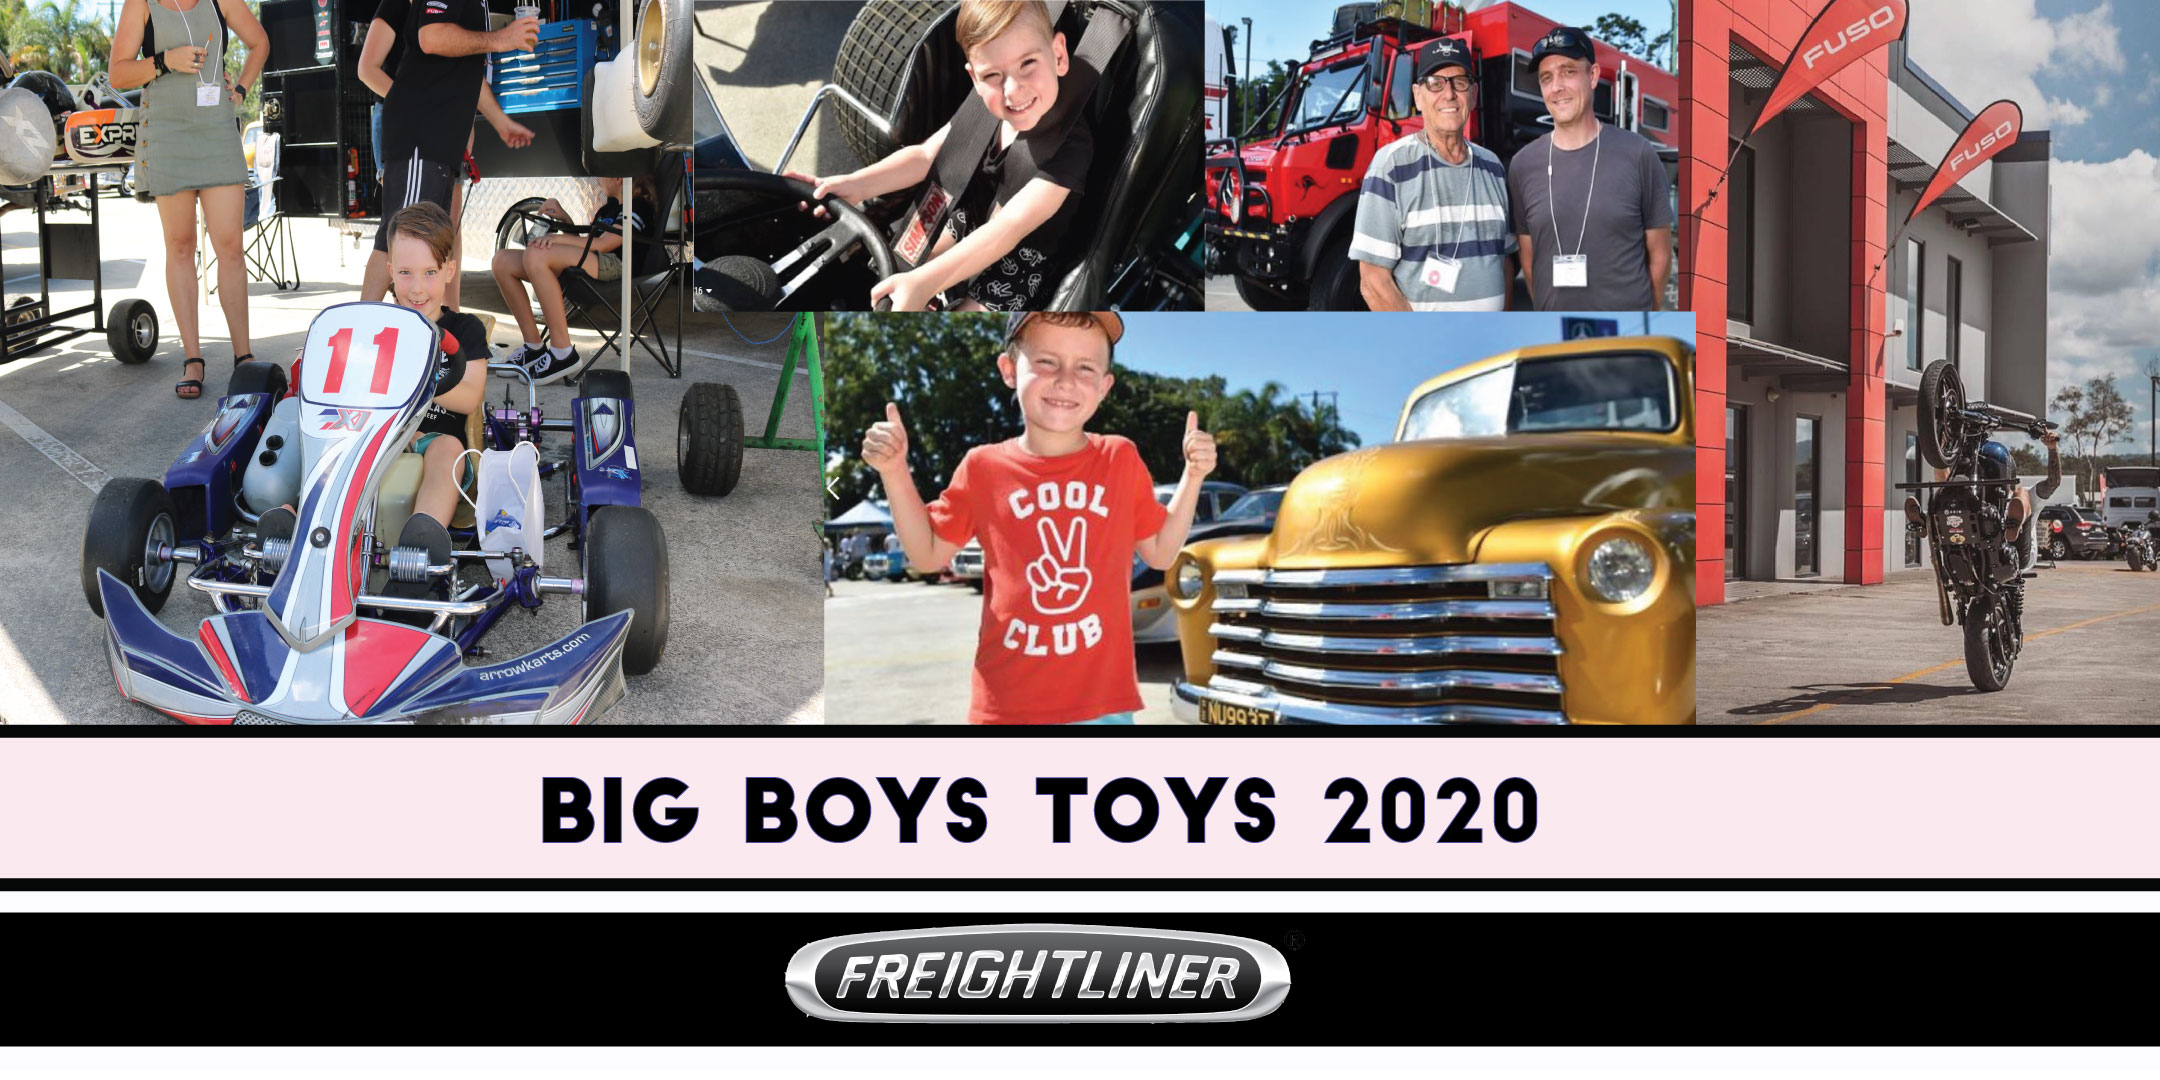 PRE-REGISTER FOR BIG BOYS TOYS 2020